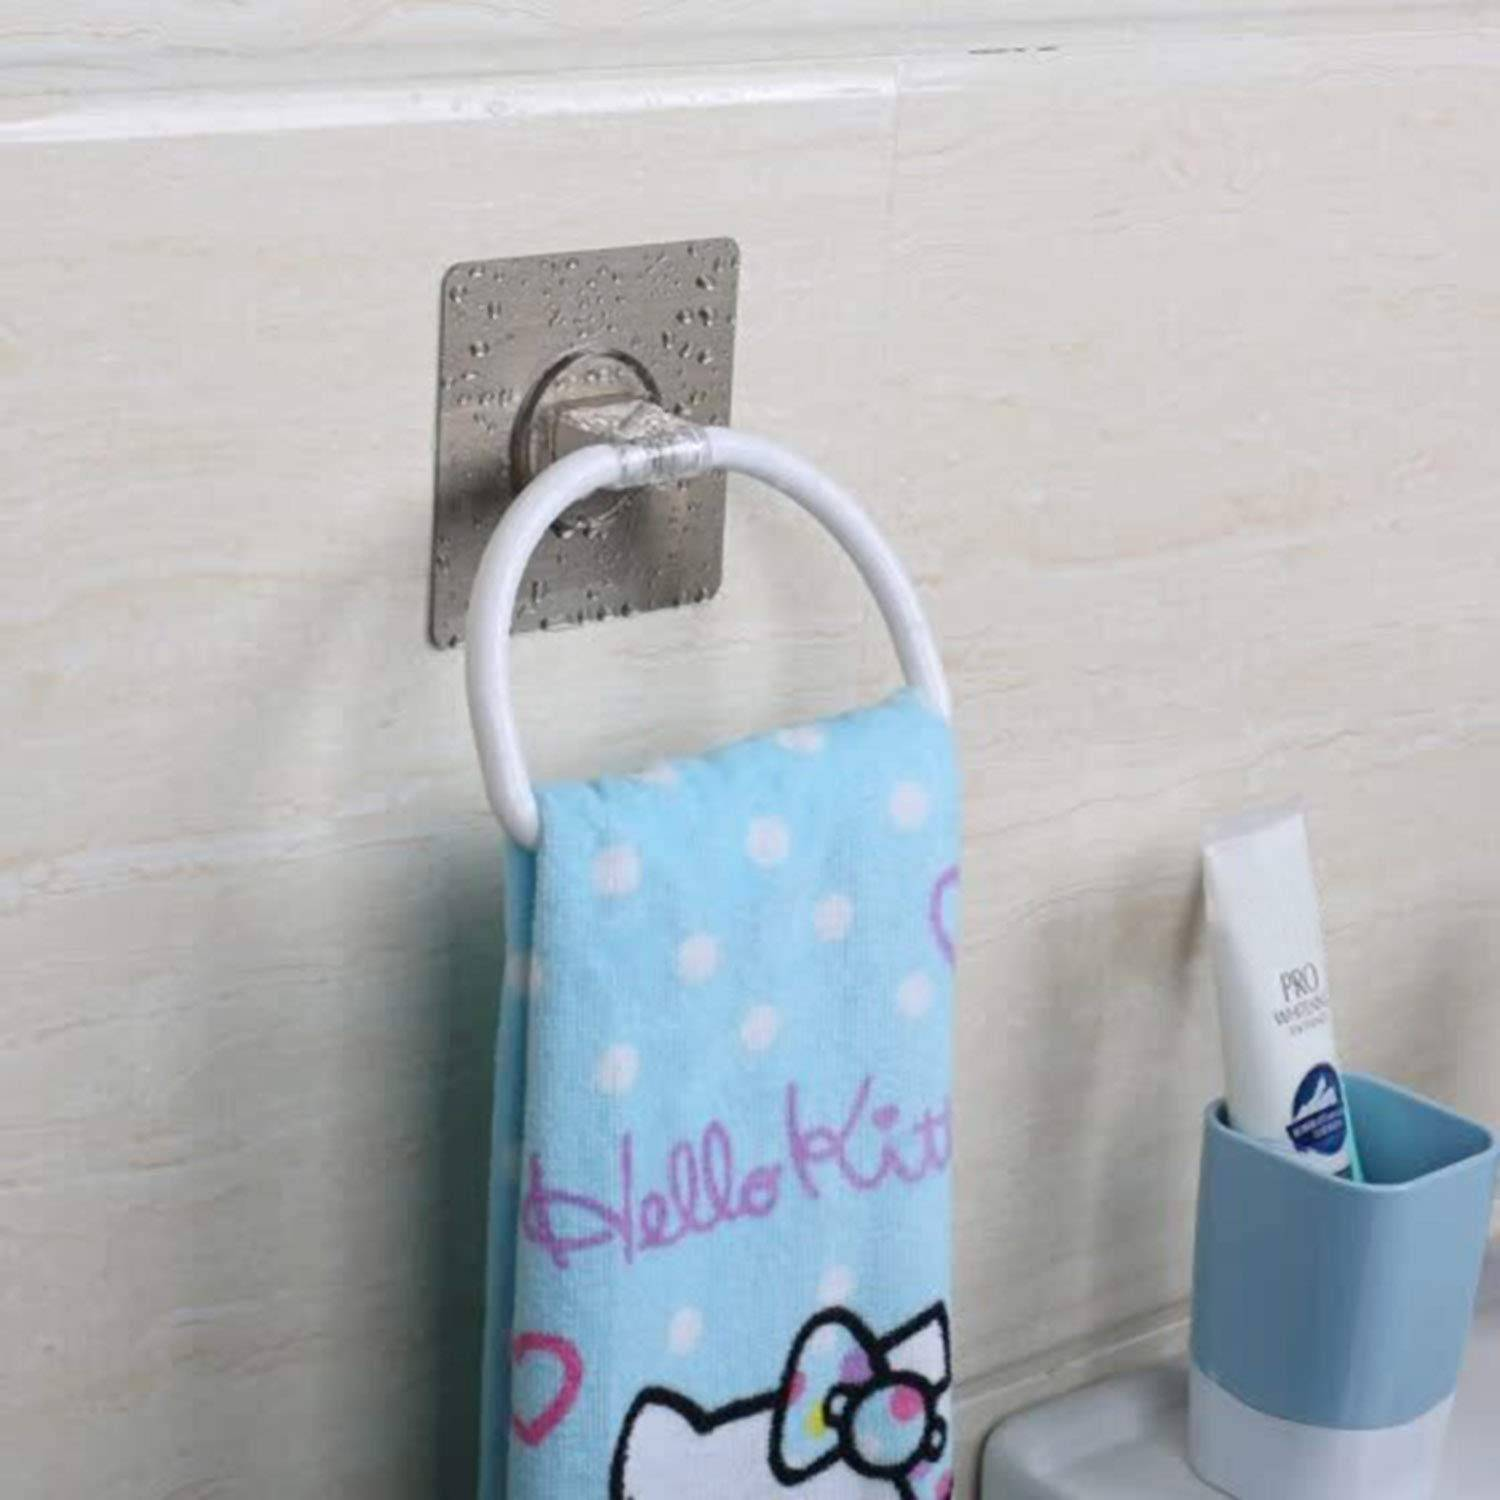 AND008160. Plastic Towel Ring for Bathroom and Kitchen